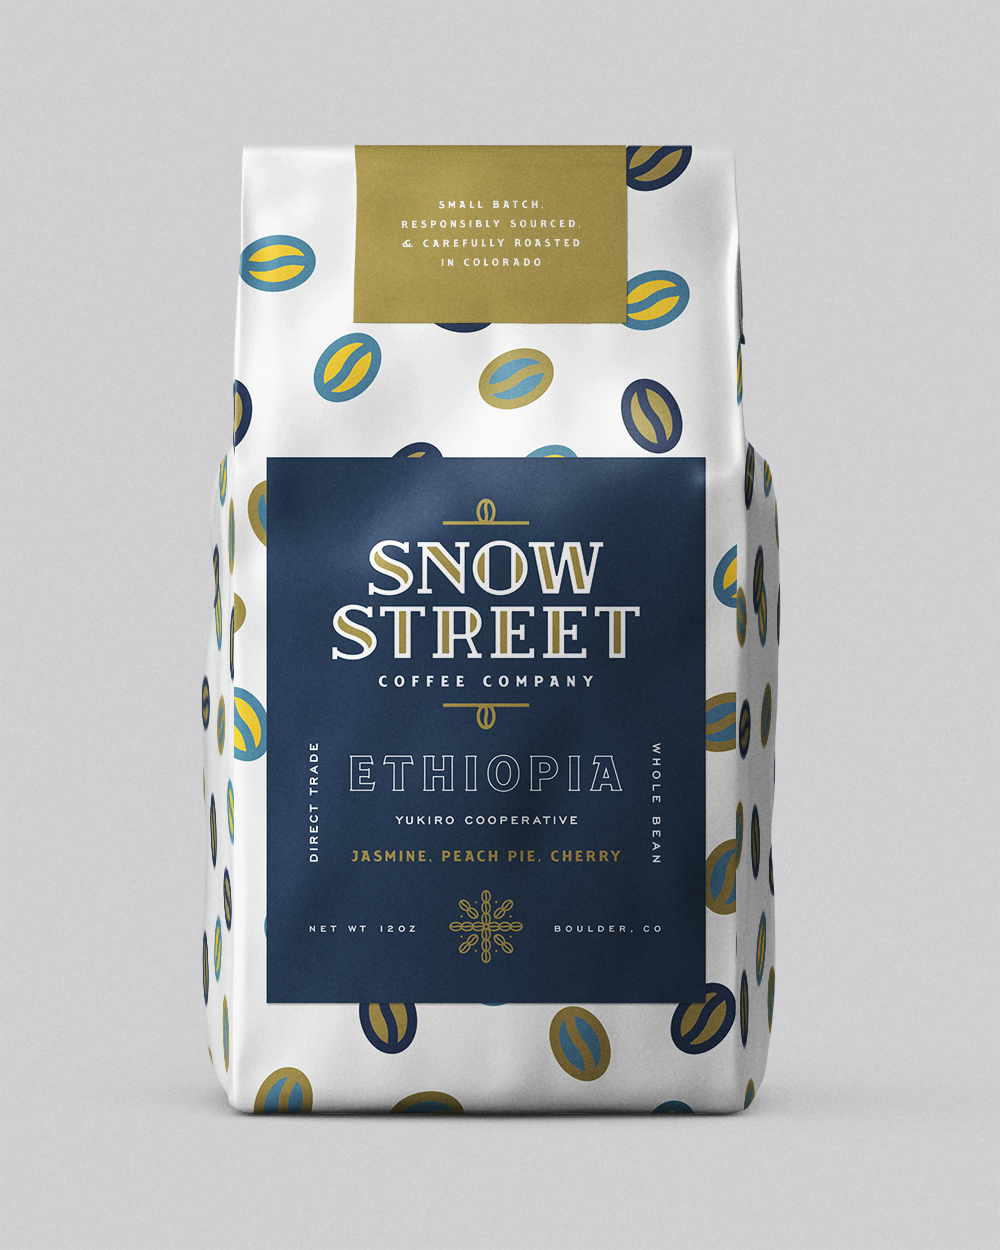 Snow Street Coffee Co.